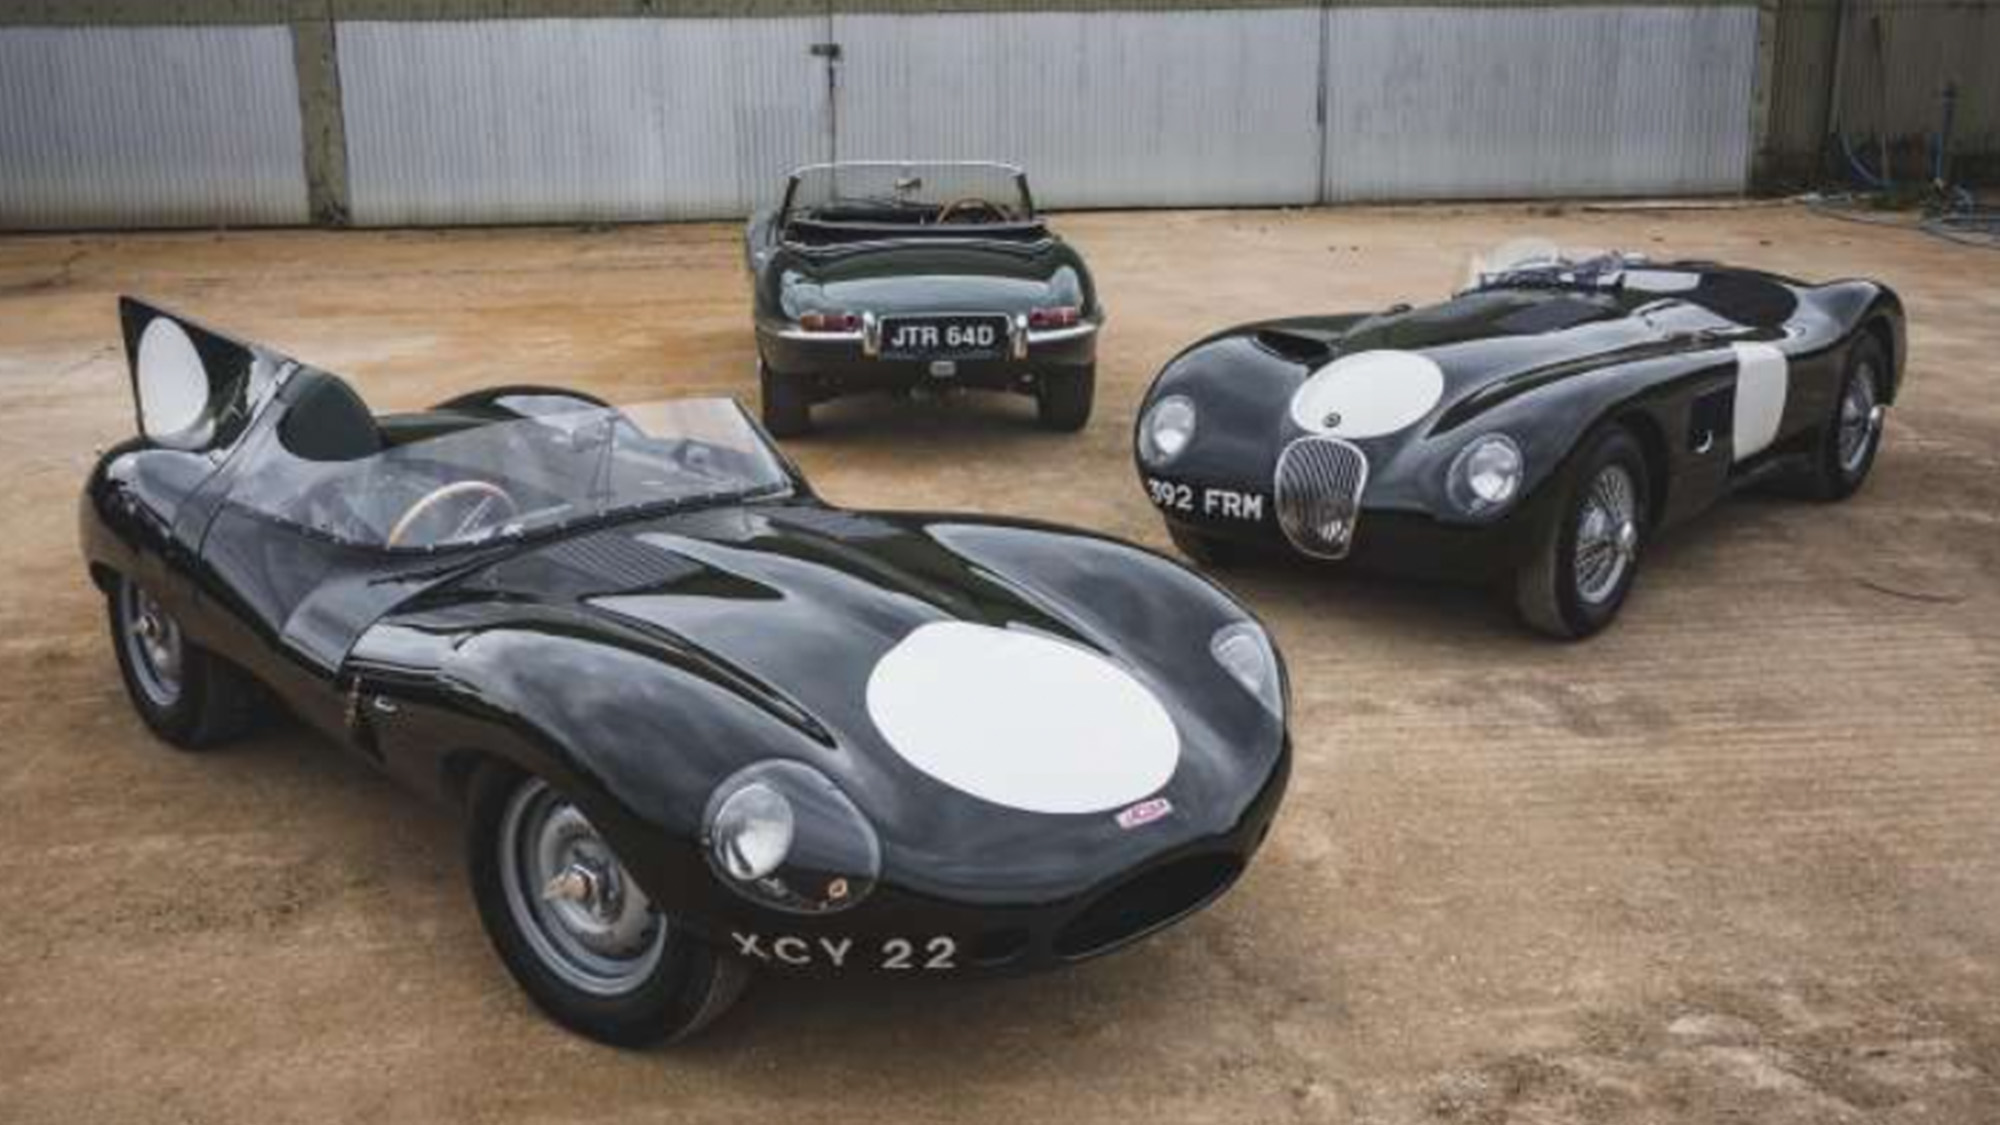 The Market Swann Collection of Jaguars